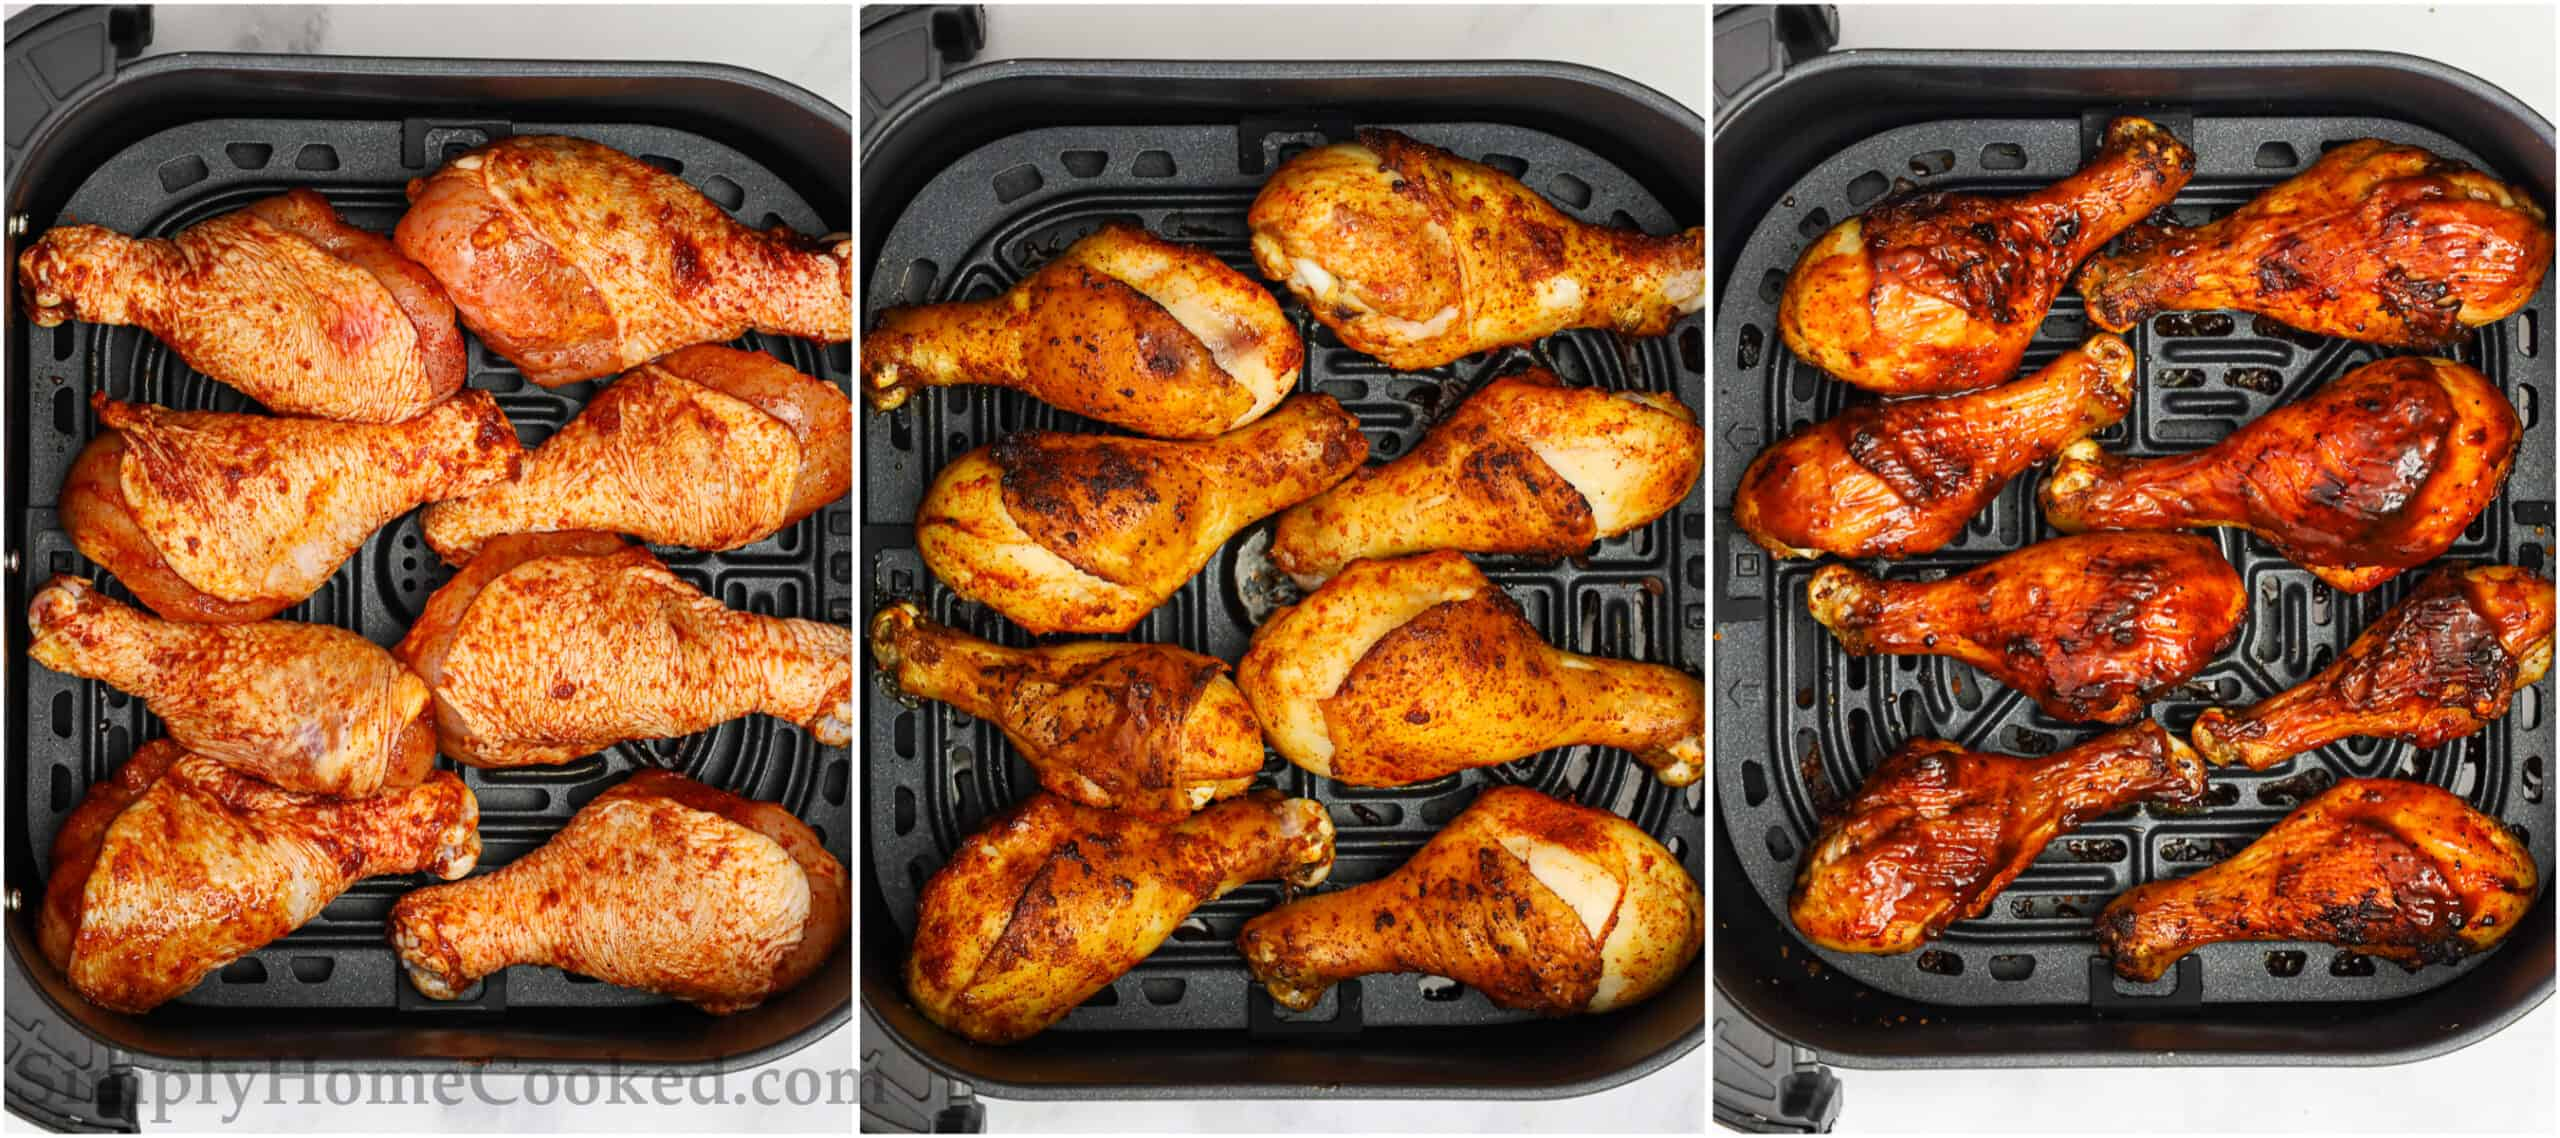 Steps to cook BBQ Air Fryer Chicken Legs, including placing the legs in the air fryer basket and cooking twice before smothering in BBQ sauce and cooking one final time.